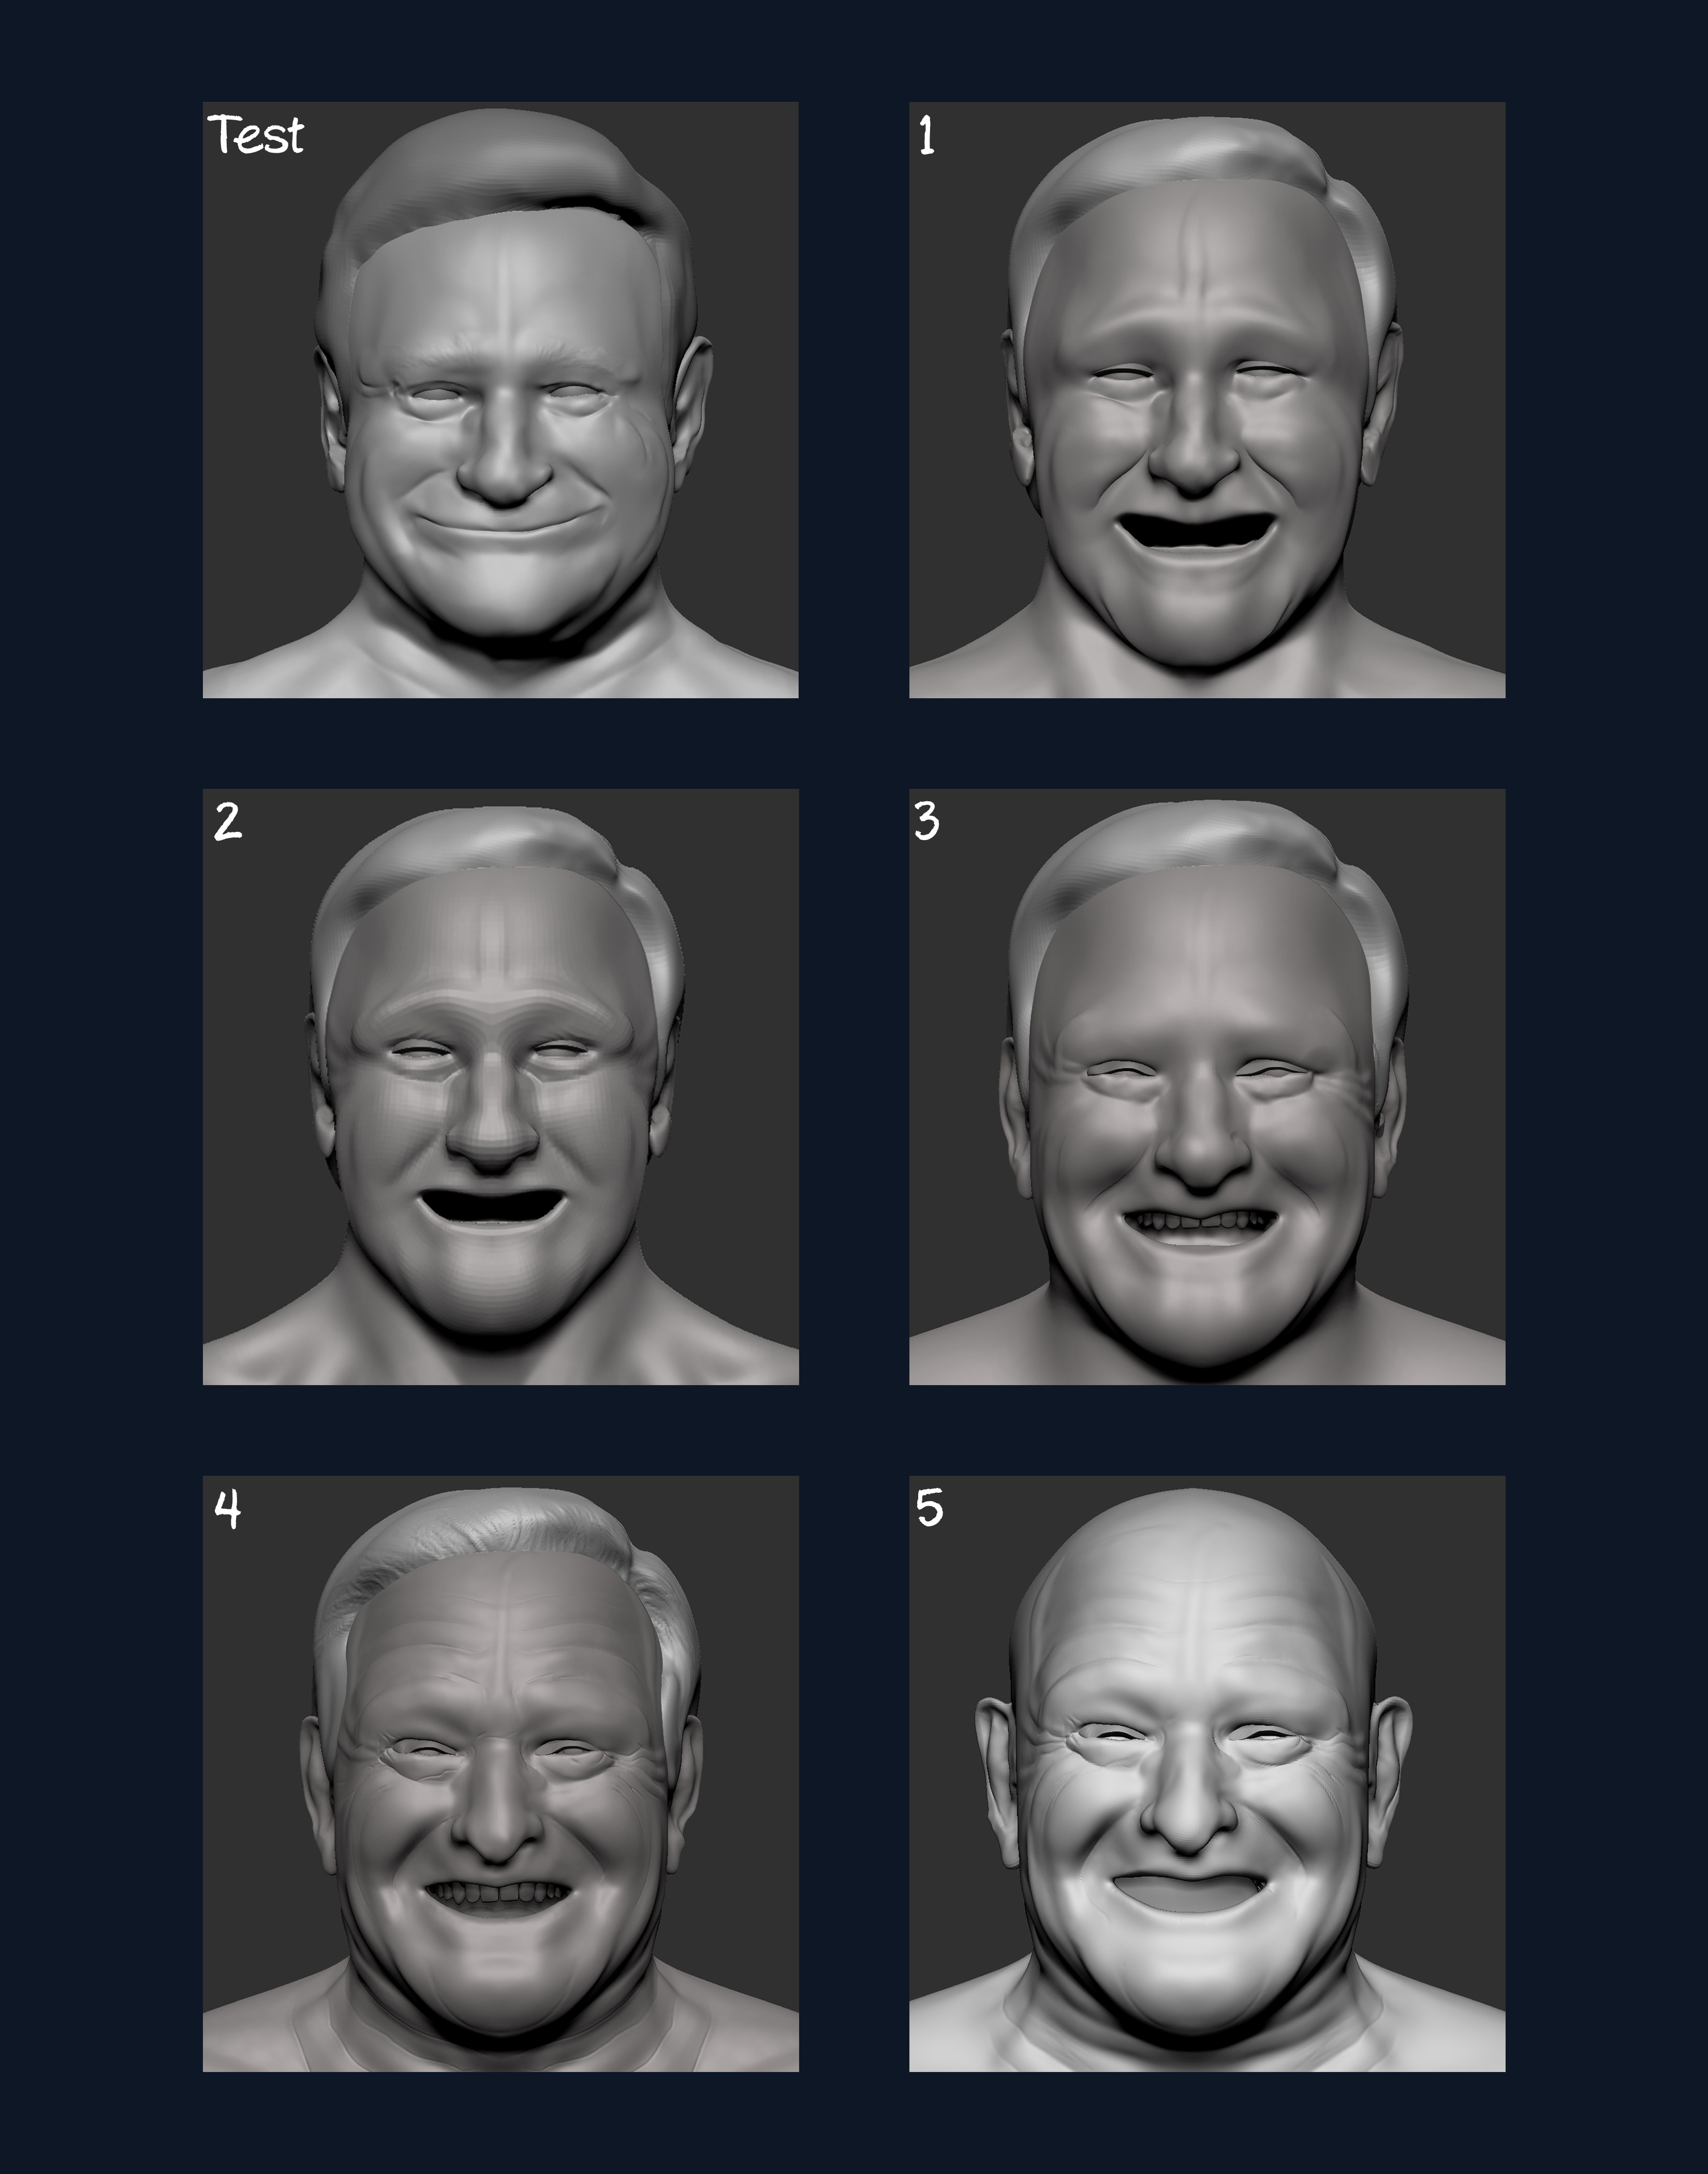 progression of faces (I didnt save as many as I would have liked)